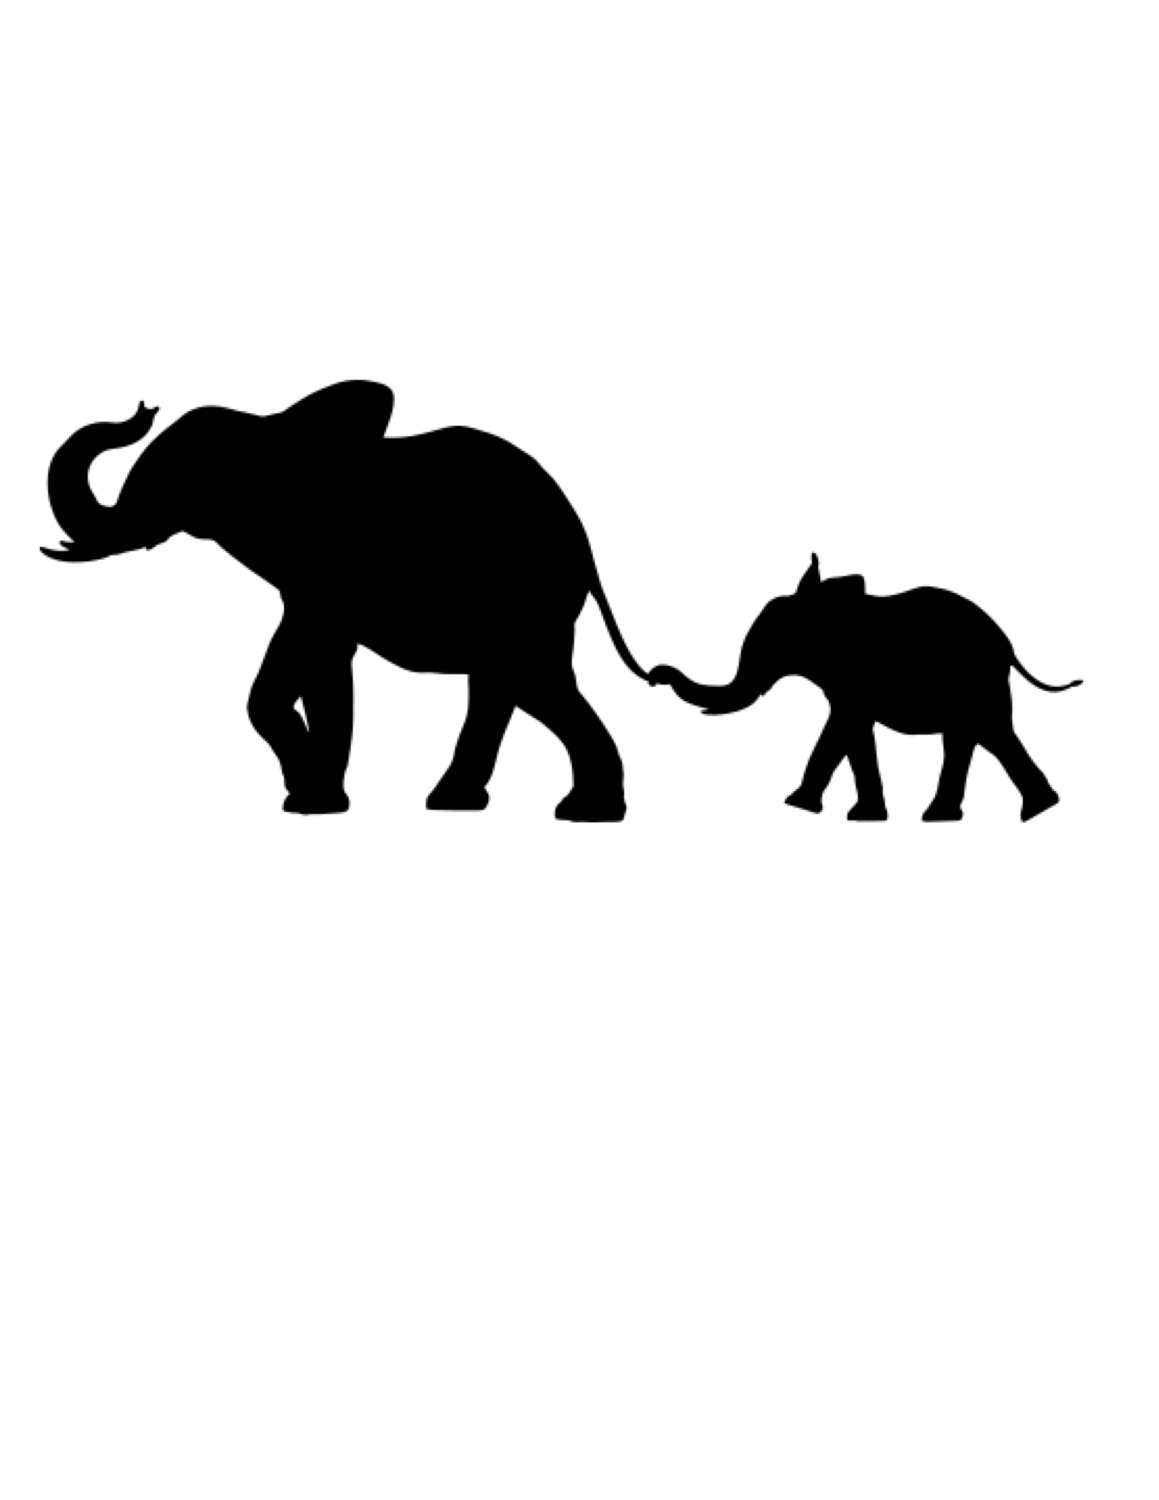 Pack Of 3 Elephant With Baby Elephant Stencils Made From 4